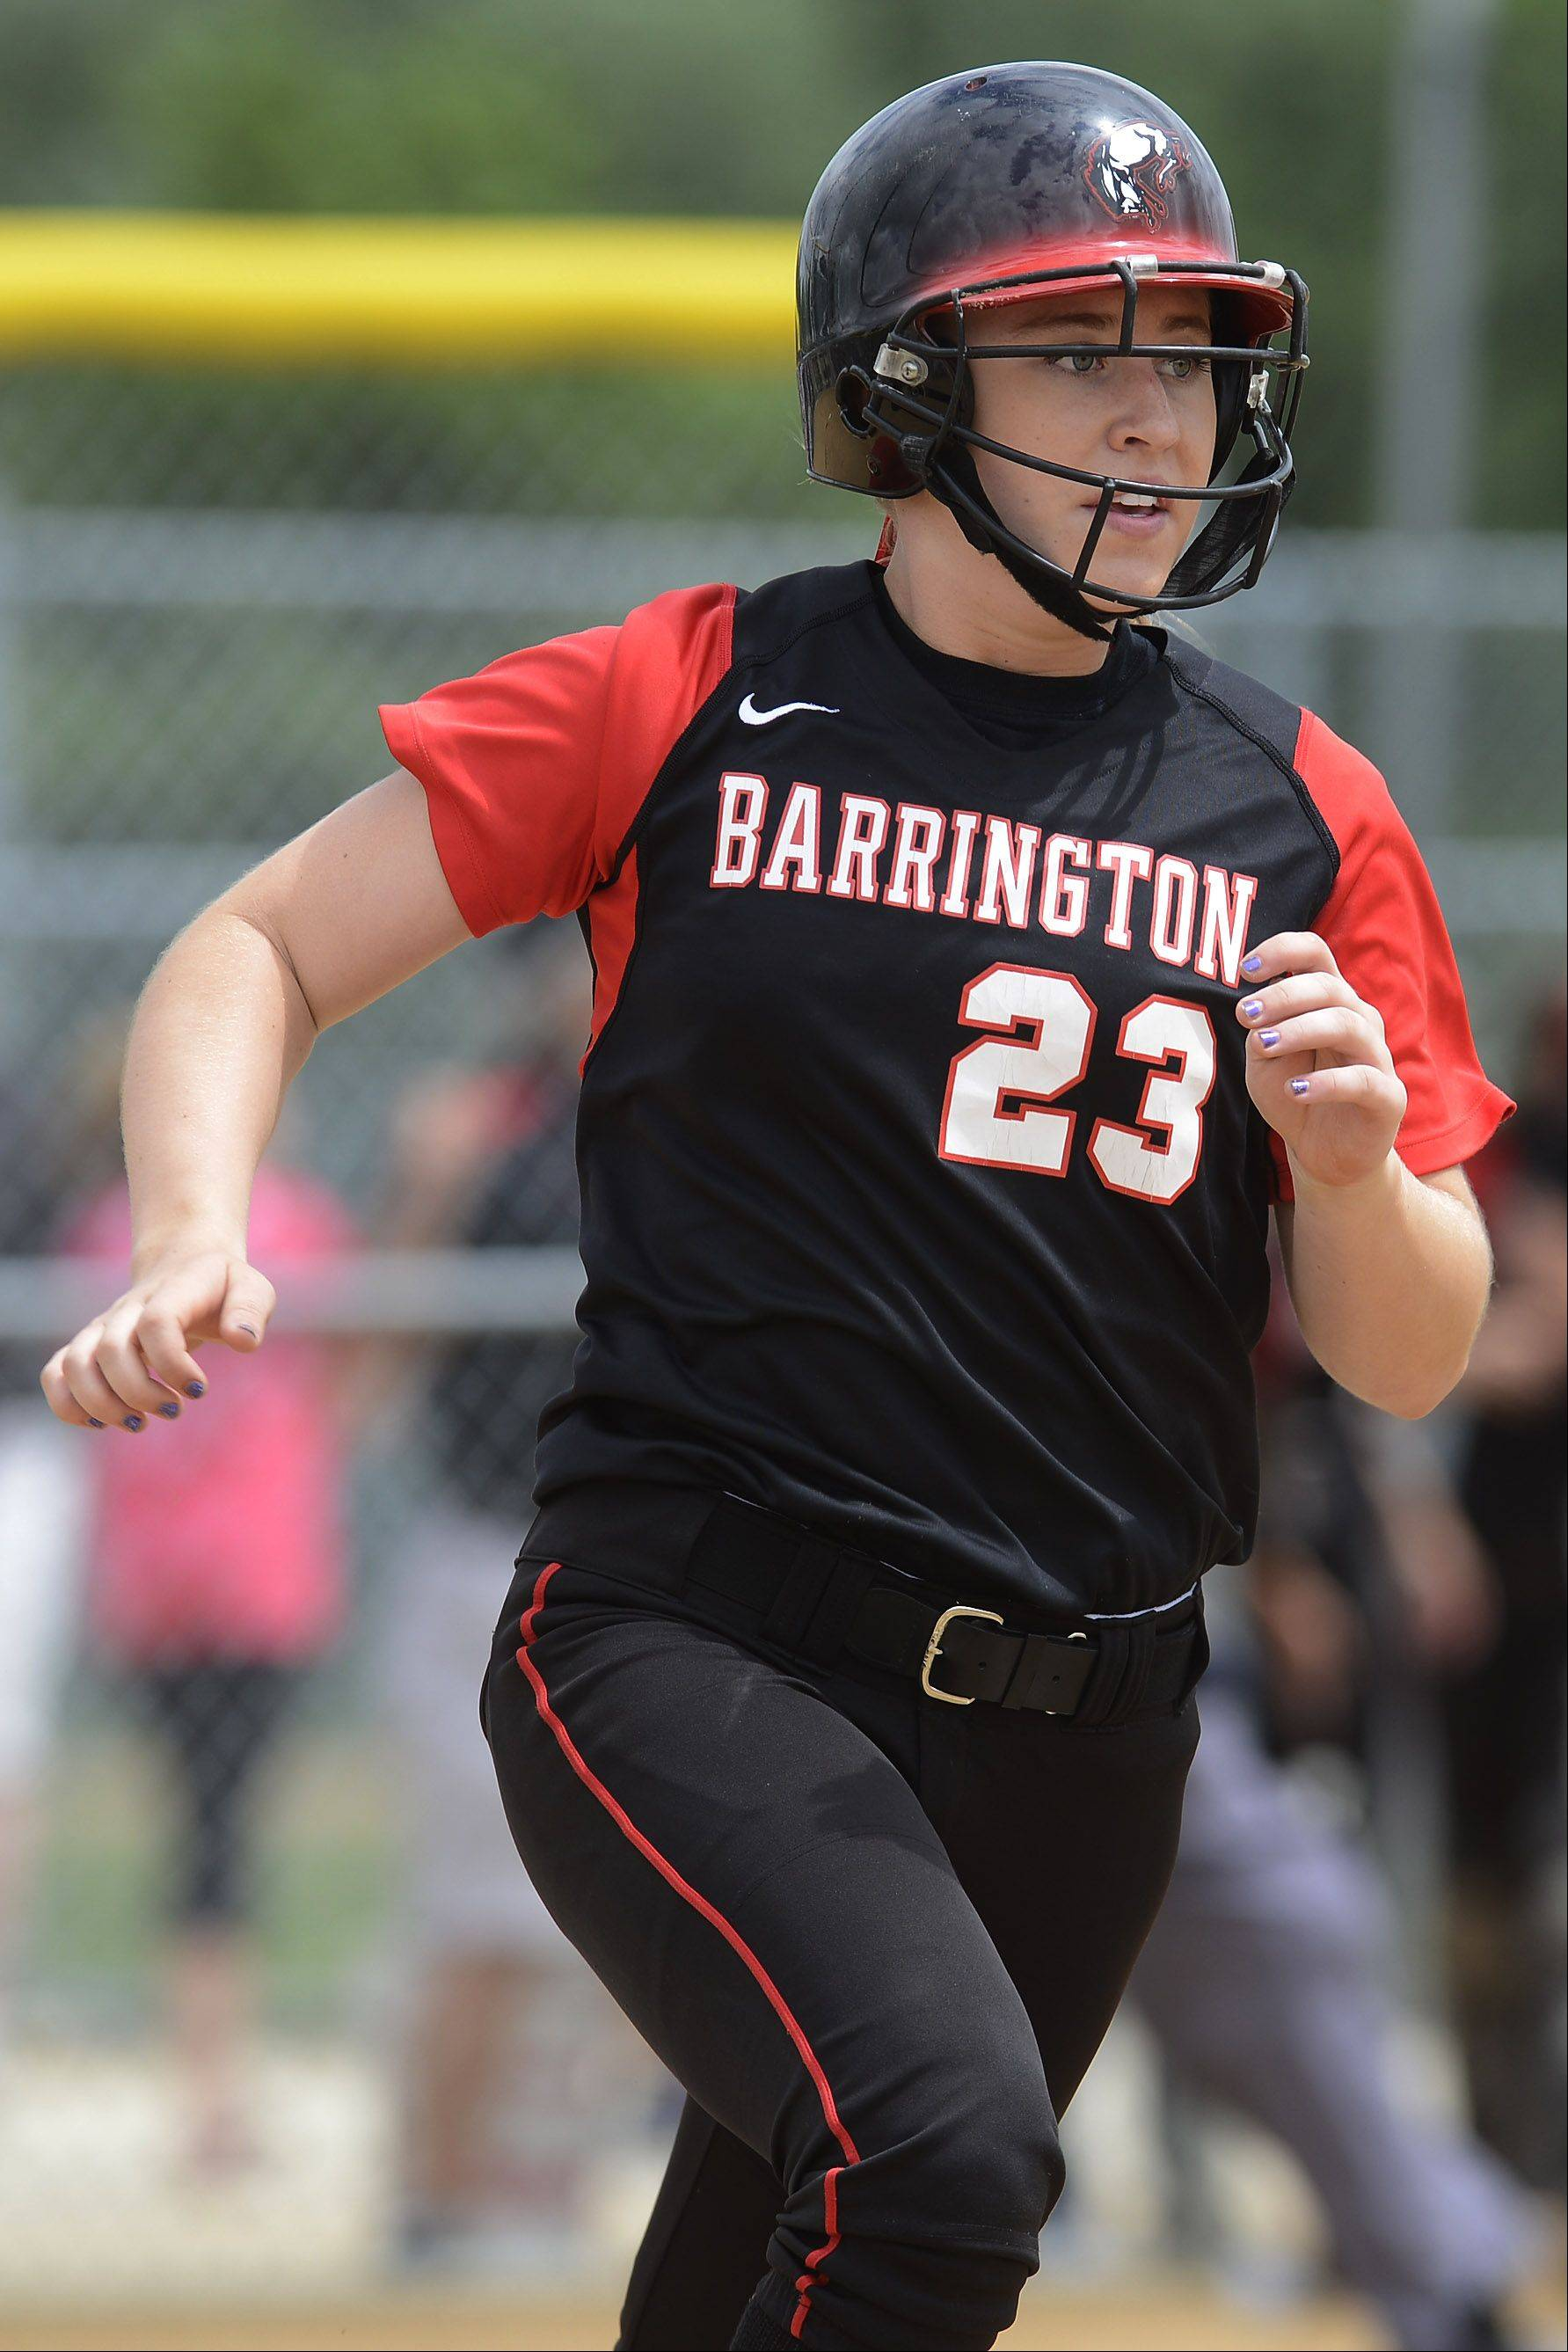 Barrington's Tess Bolger rounds first base after hitting a leadoff home run on the first pitch against New Trier during the Rolling Meadows sectional final Saturday.